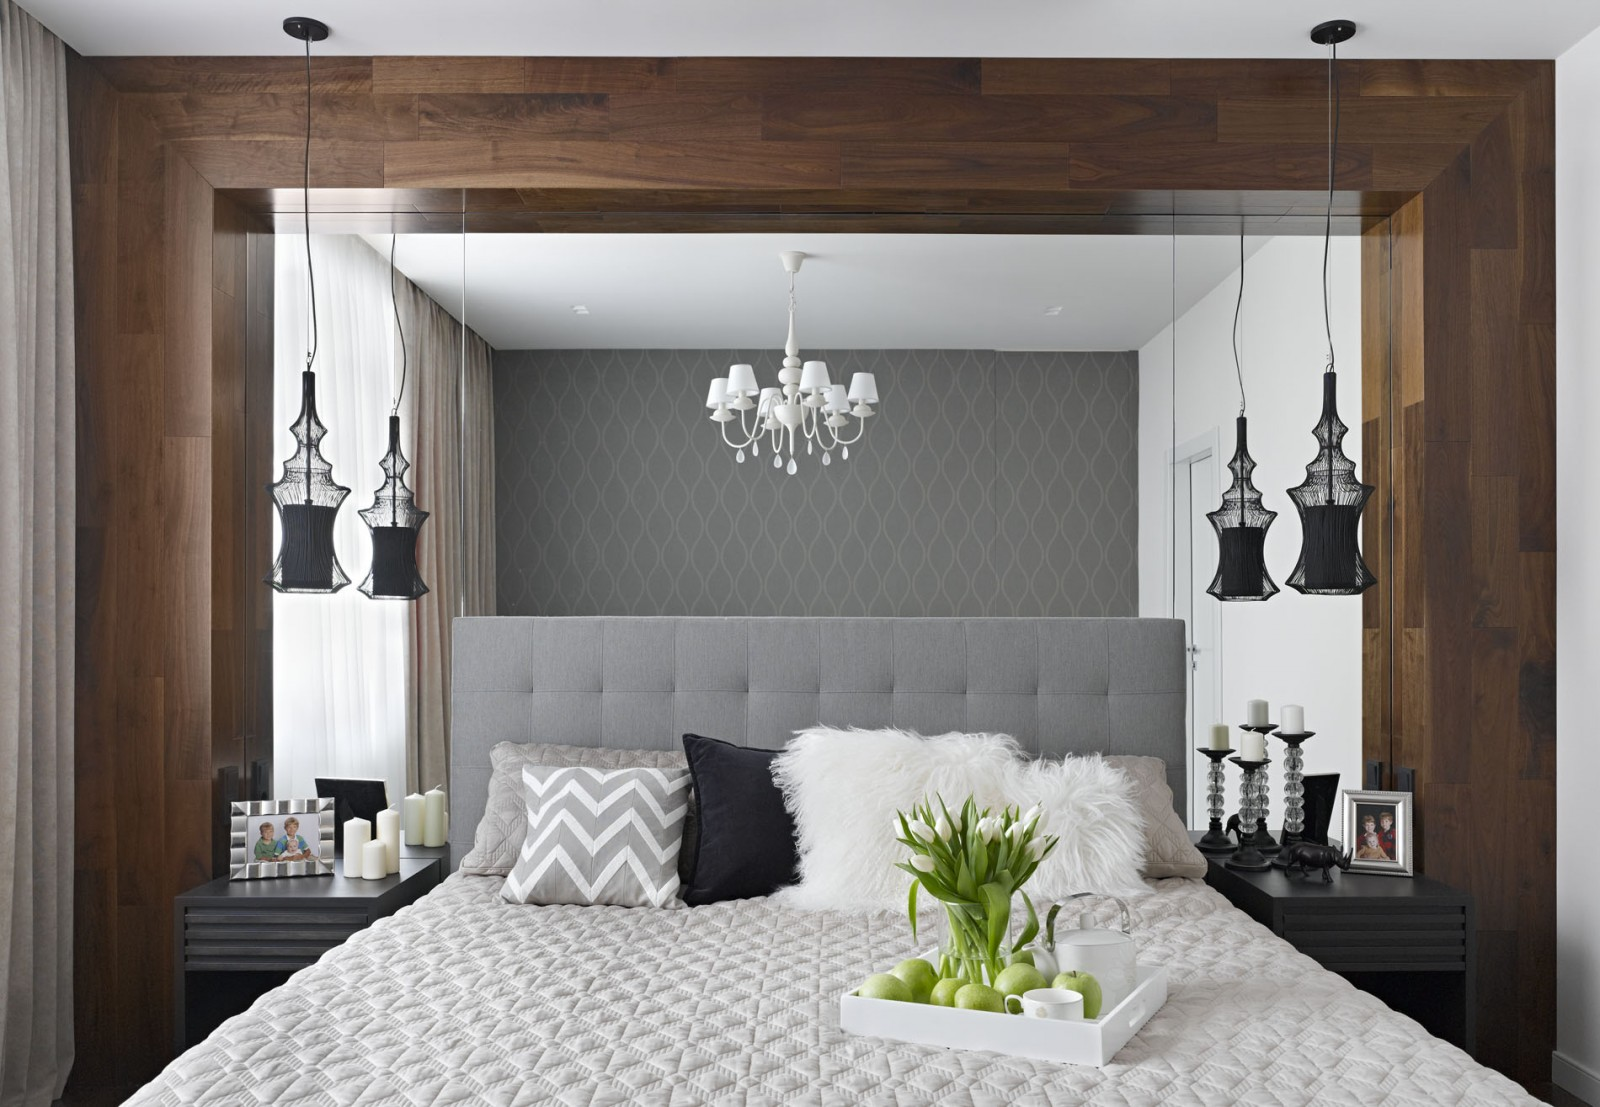 ideas small bedrooms. Amazing bedroom ideas from Alexandra Fedorova 20 Small Bedroom Ideas That Will Leave You Speechless  Architecture